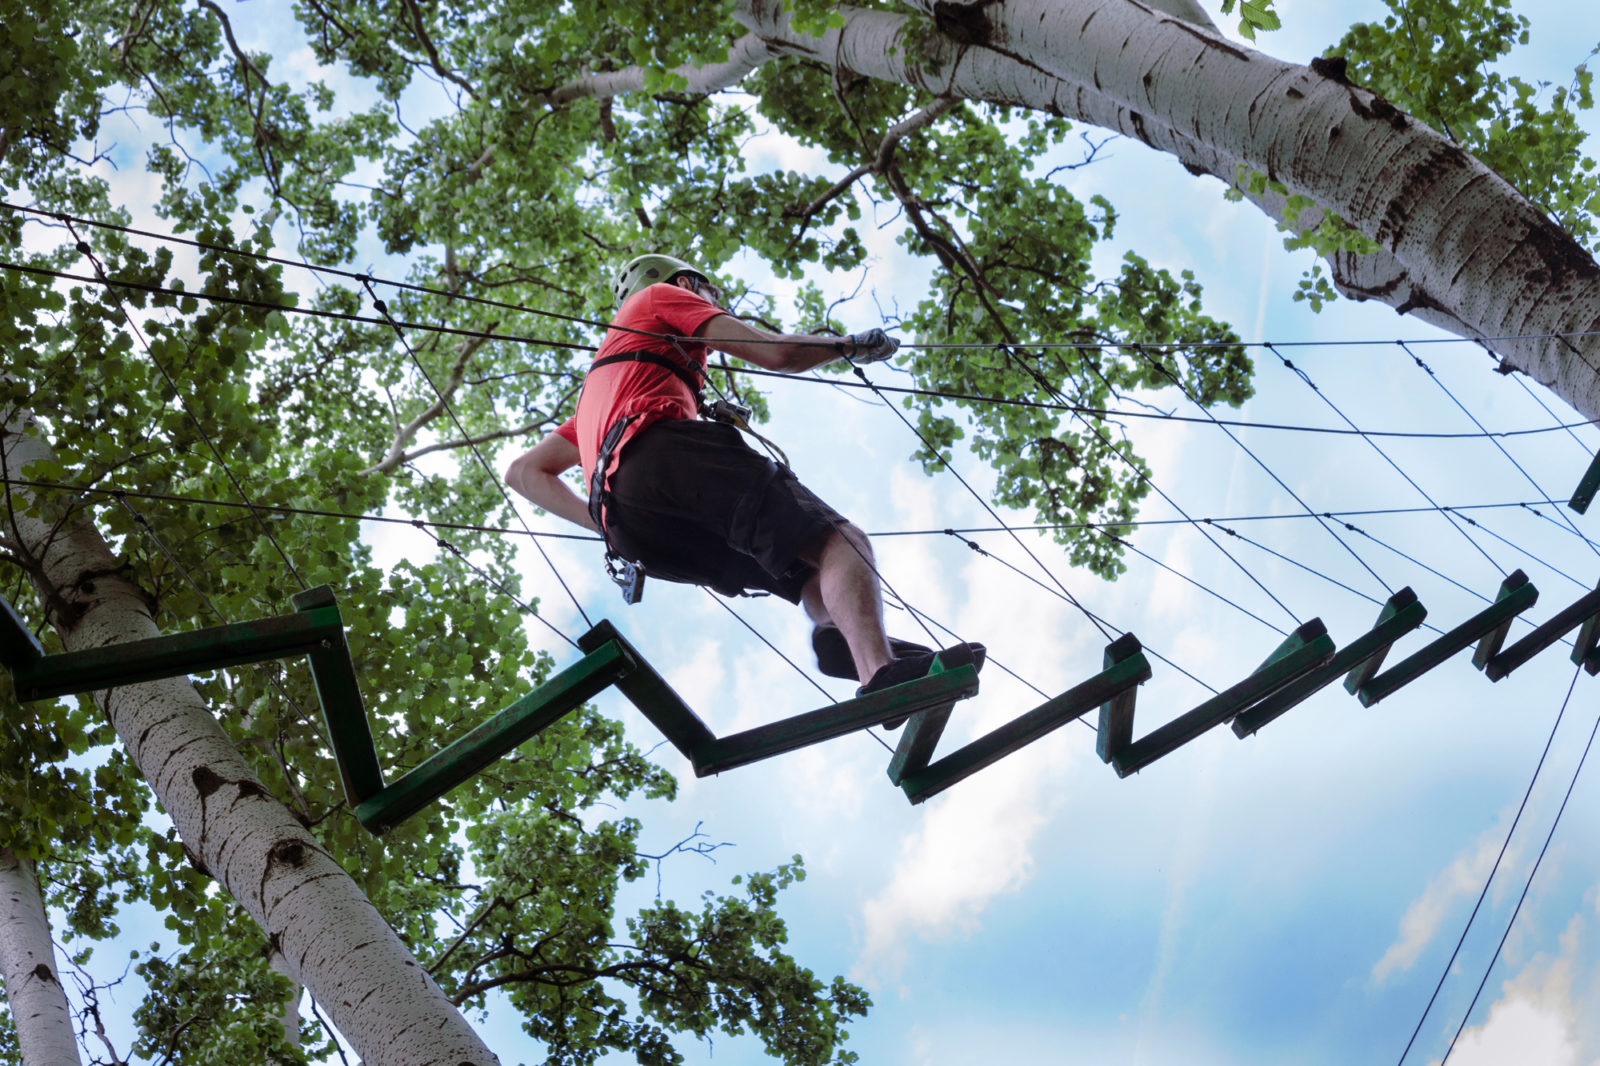 Tree-Top Course theme for events